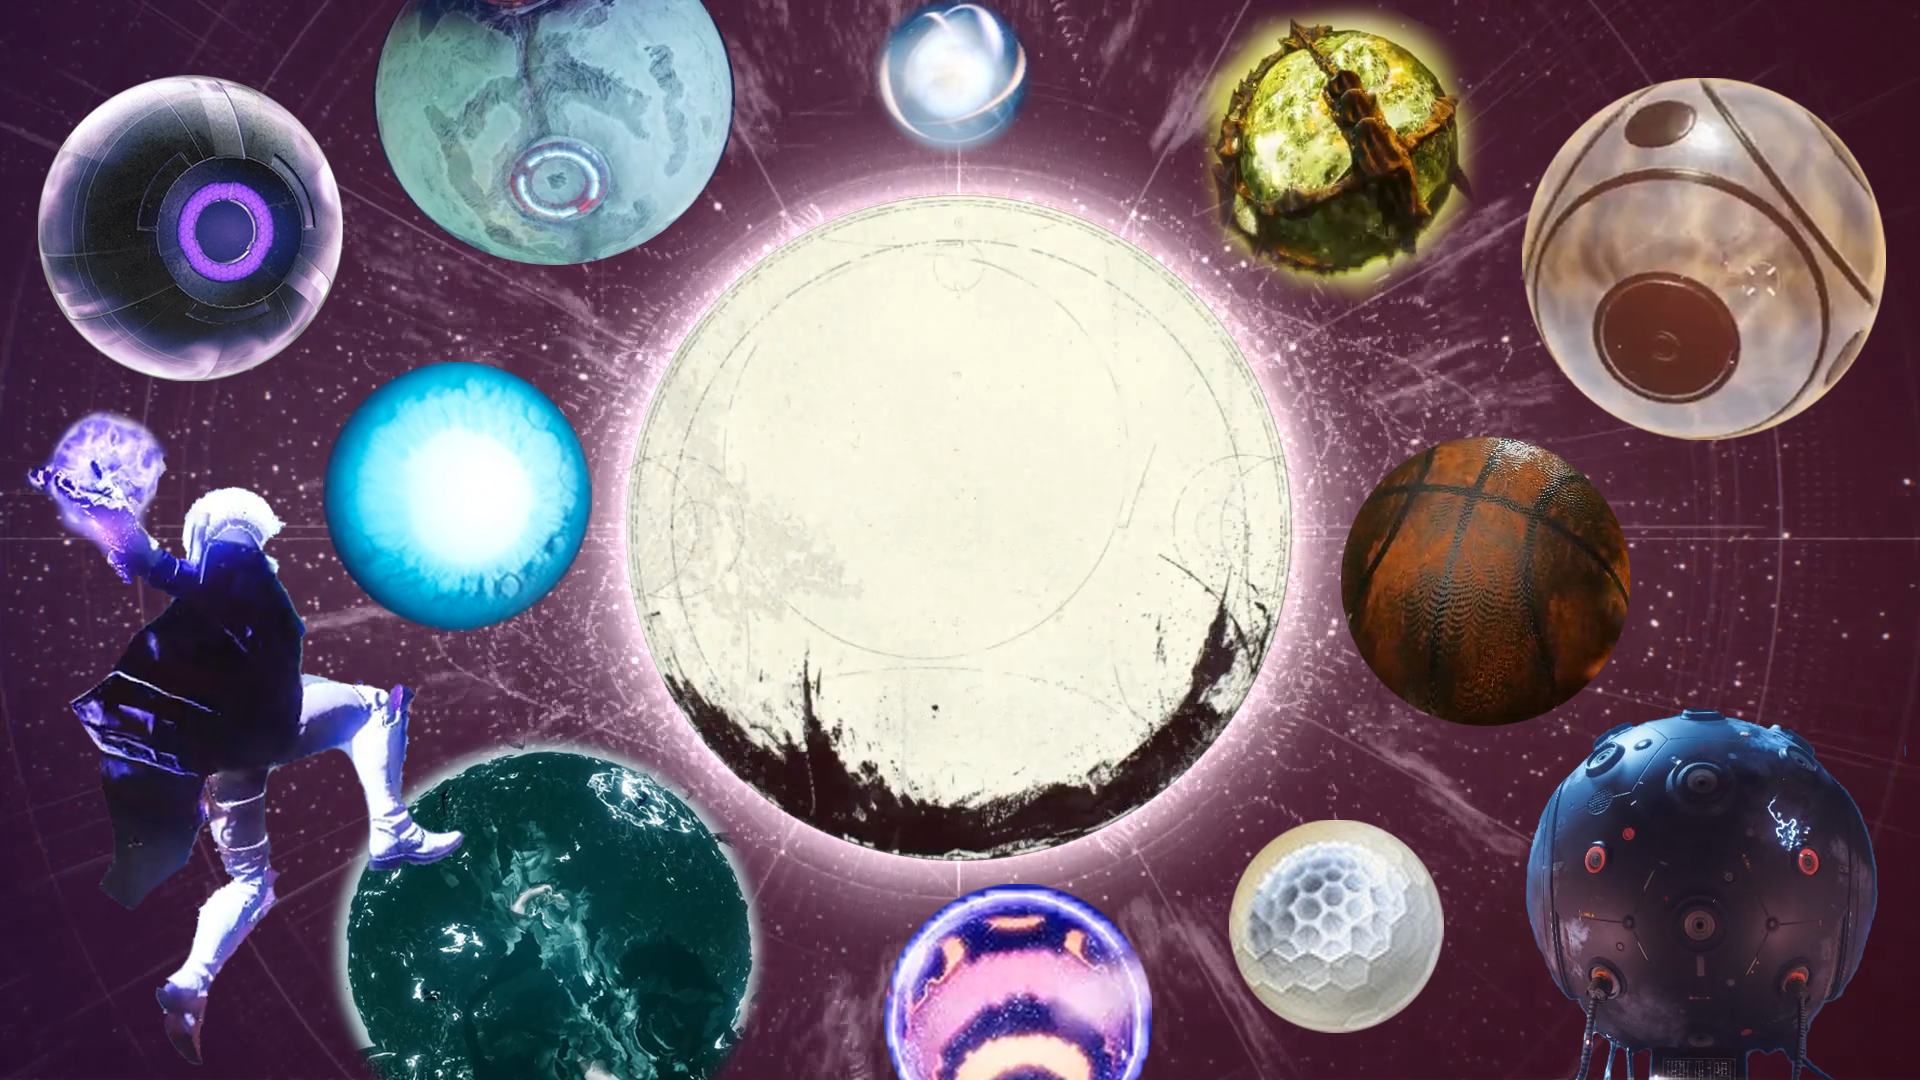 A collage of orbs from the Destiny series, including the Traveler, enemy spheres, and a guardian preparing to slam dunk a ball of energy.